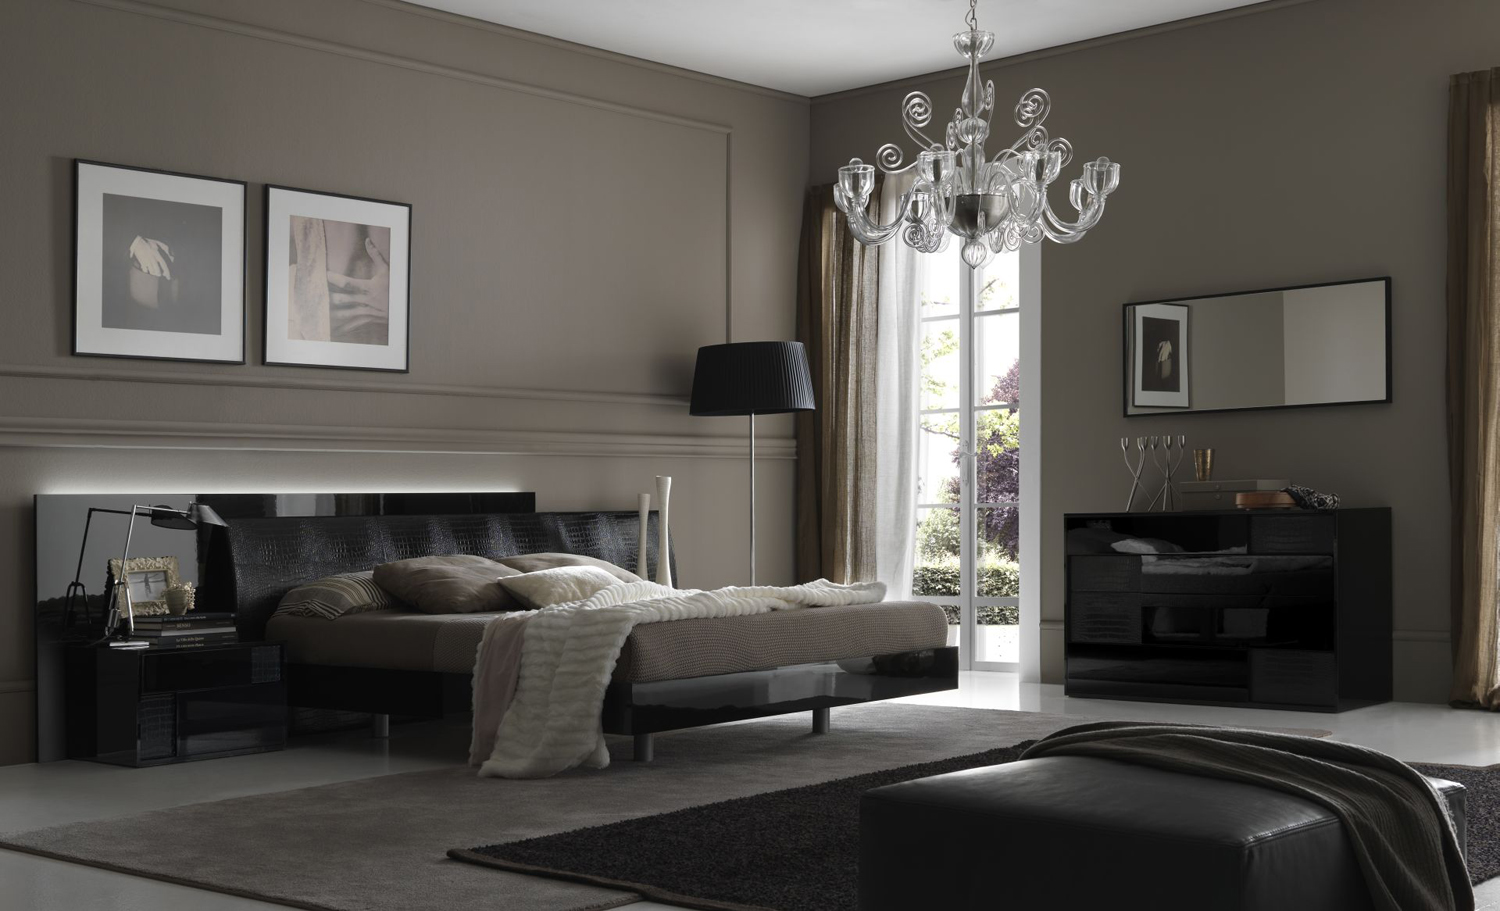 Beautiful bedroom with the skirting boards painted the same colour as the walls